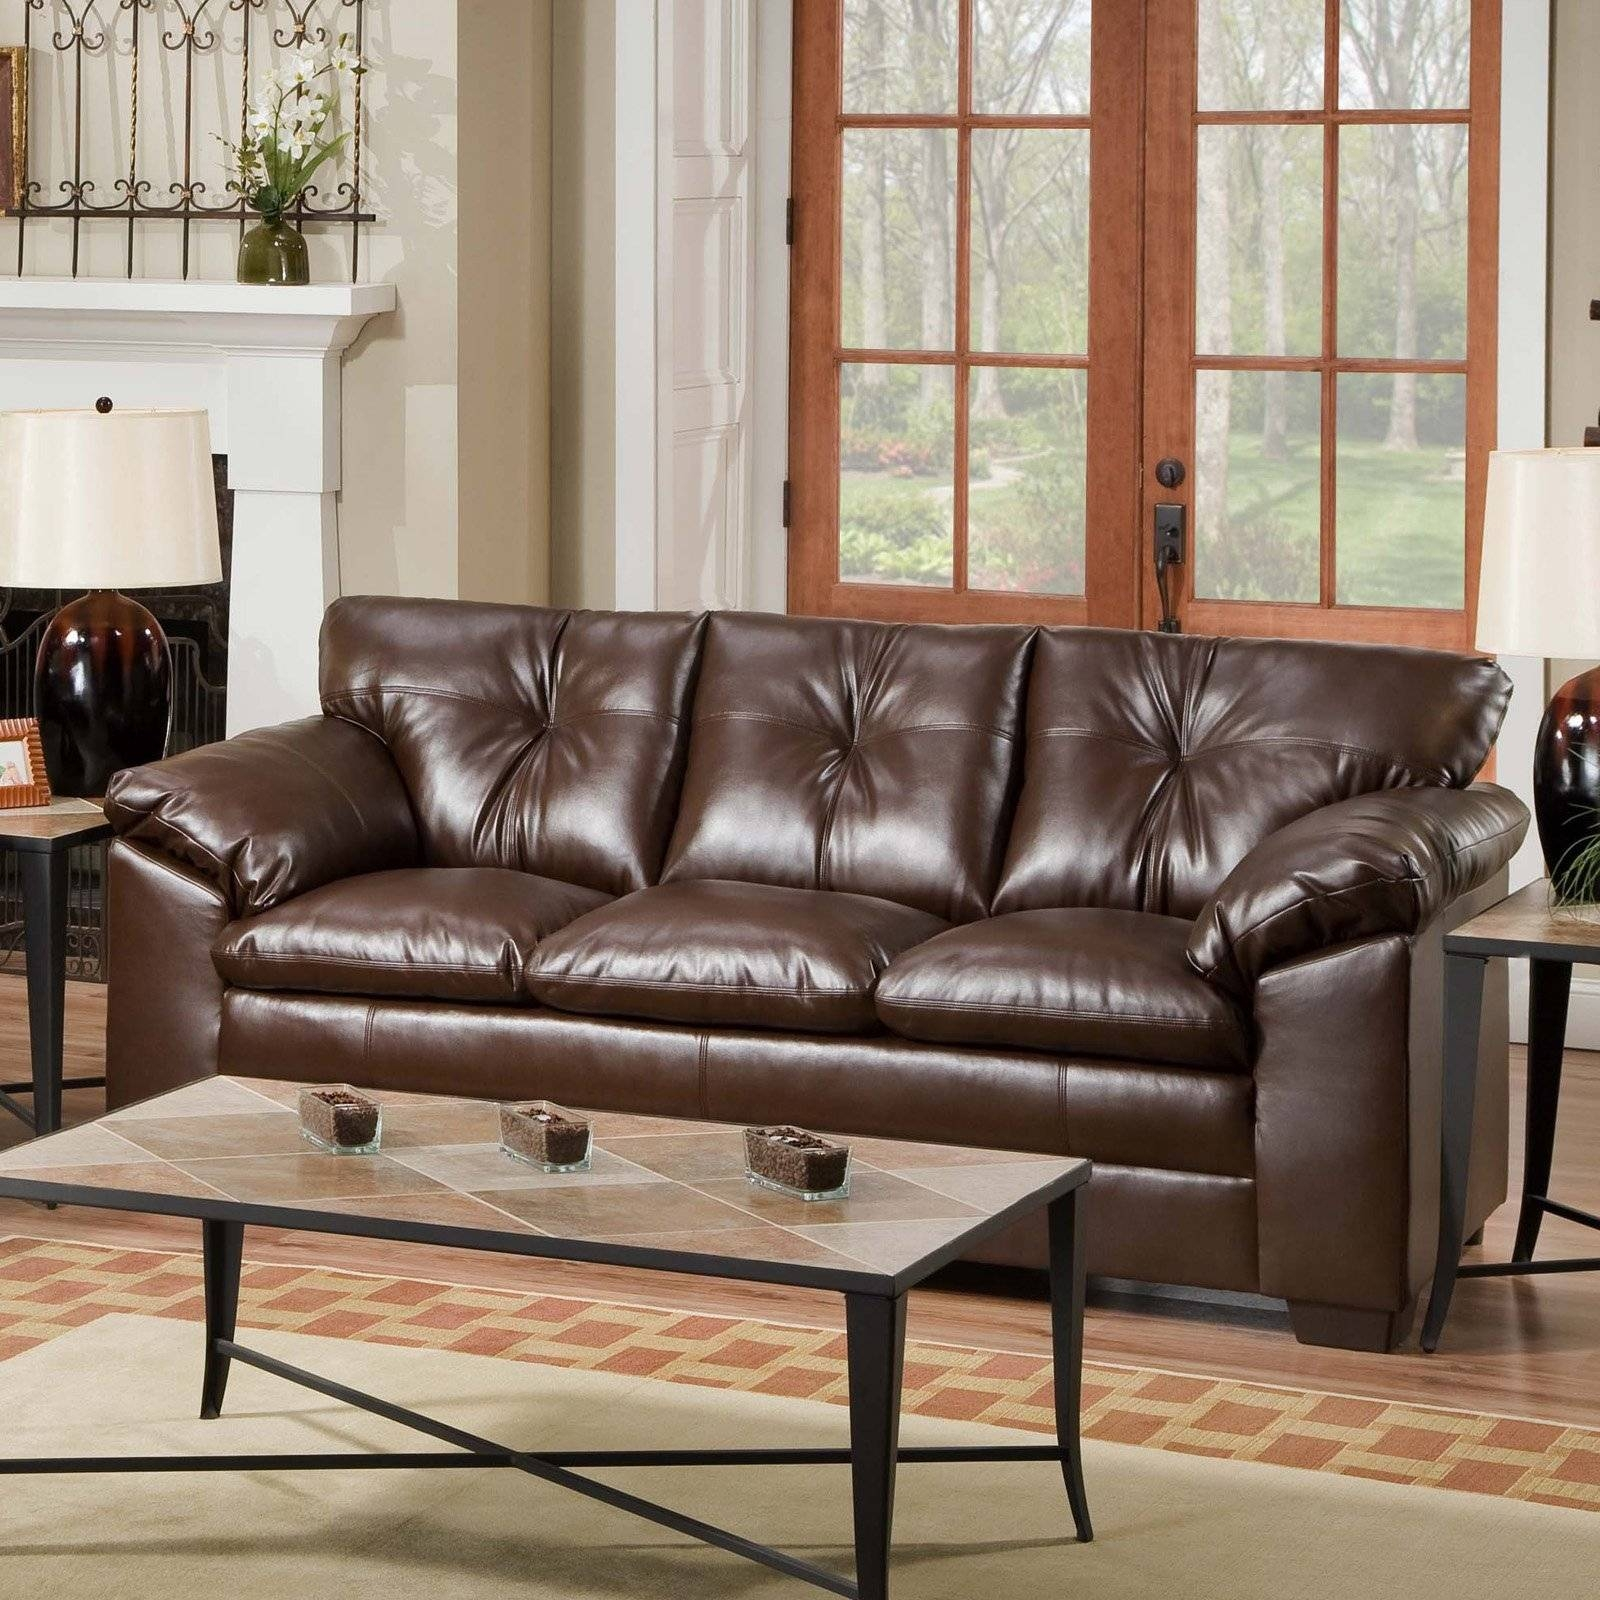 Simmons Sebring Black Leather Sofa - Sofas & Loveseats At Hayneedle with regard to Simmons Leather Sofas (Image 12 of 15)